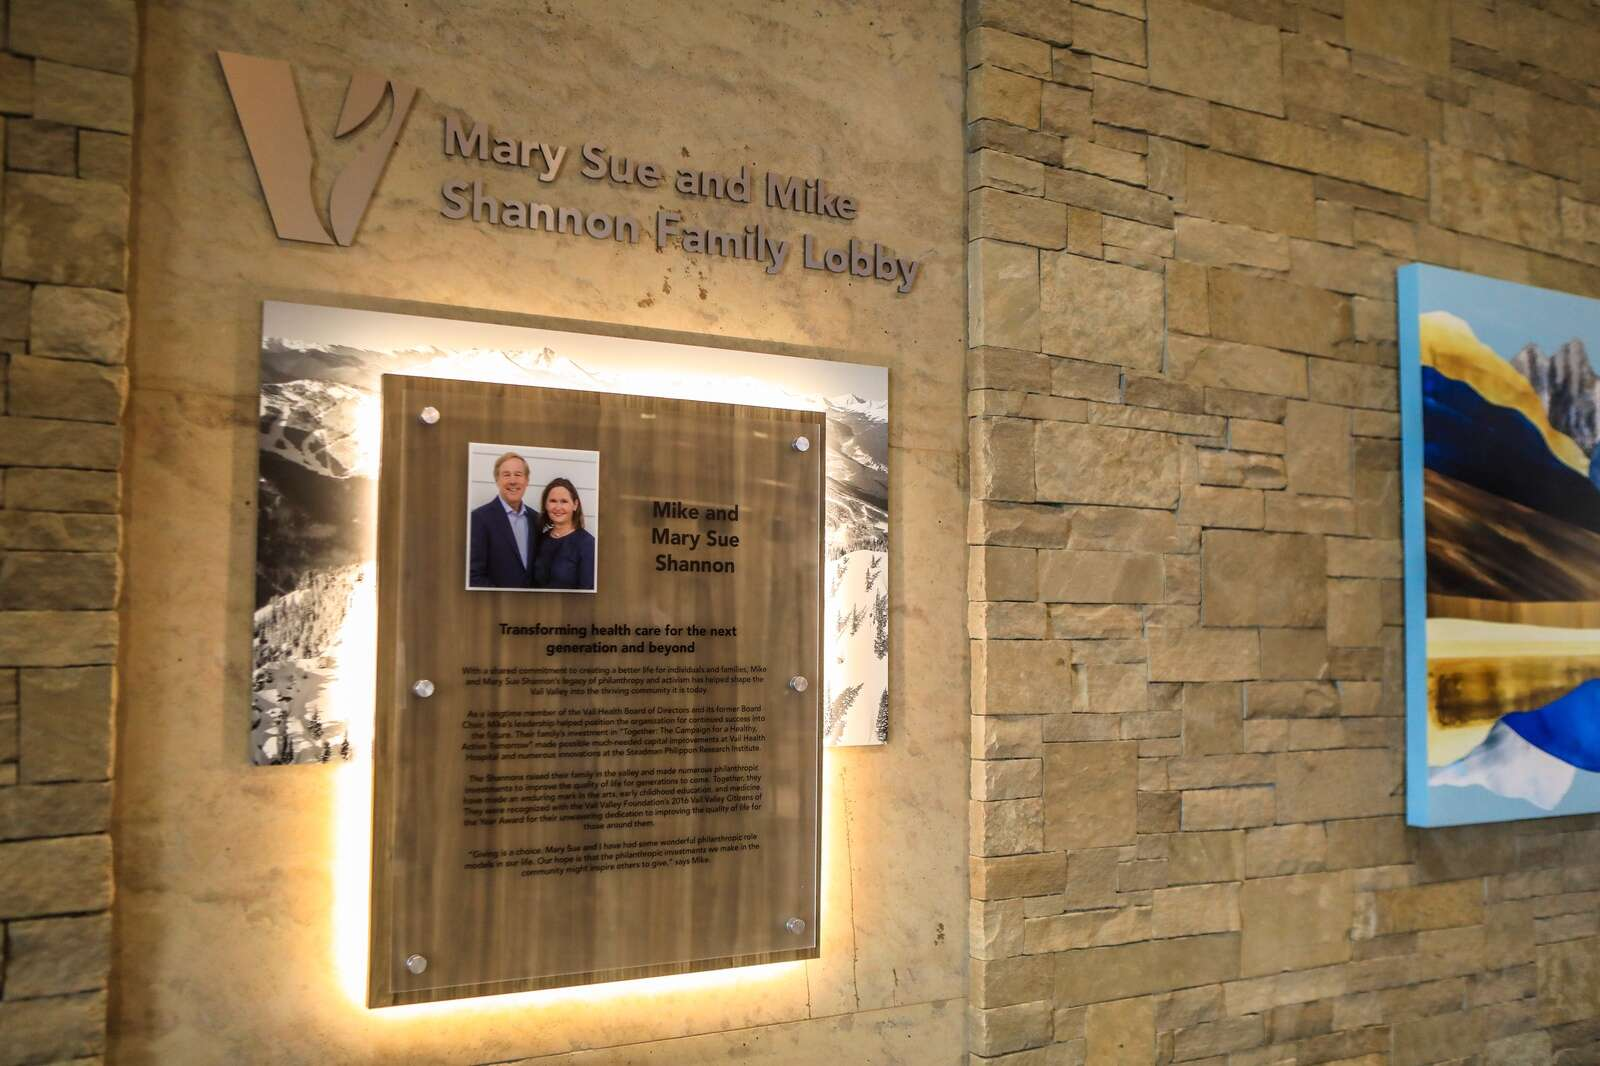 A plaque recognizes the new Mary Sue and Mike Shannon Lobby in the hospital's new wing. | Chris Dillmann/cdillmann@vaildaily.com